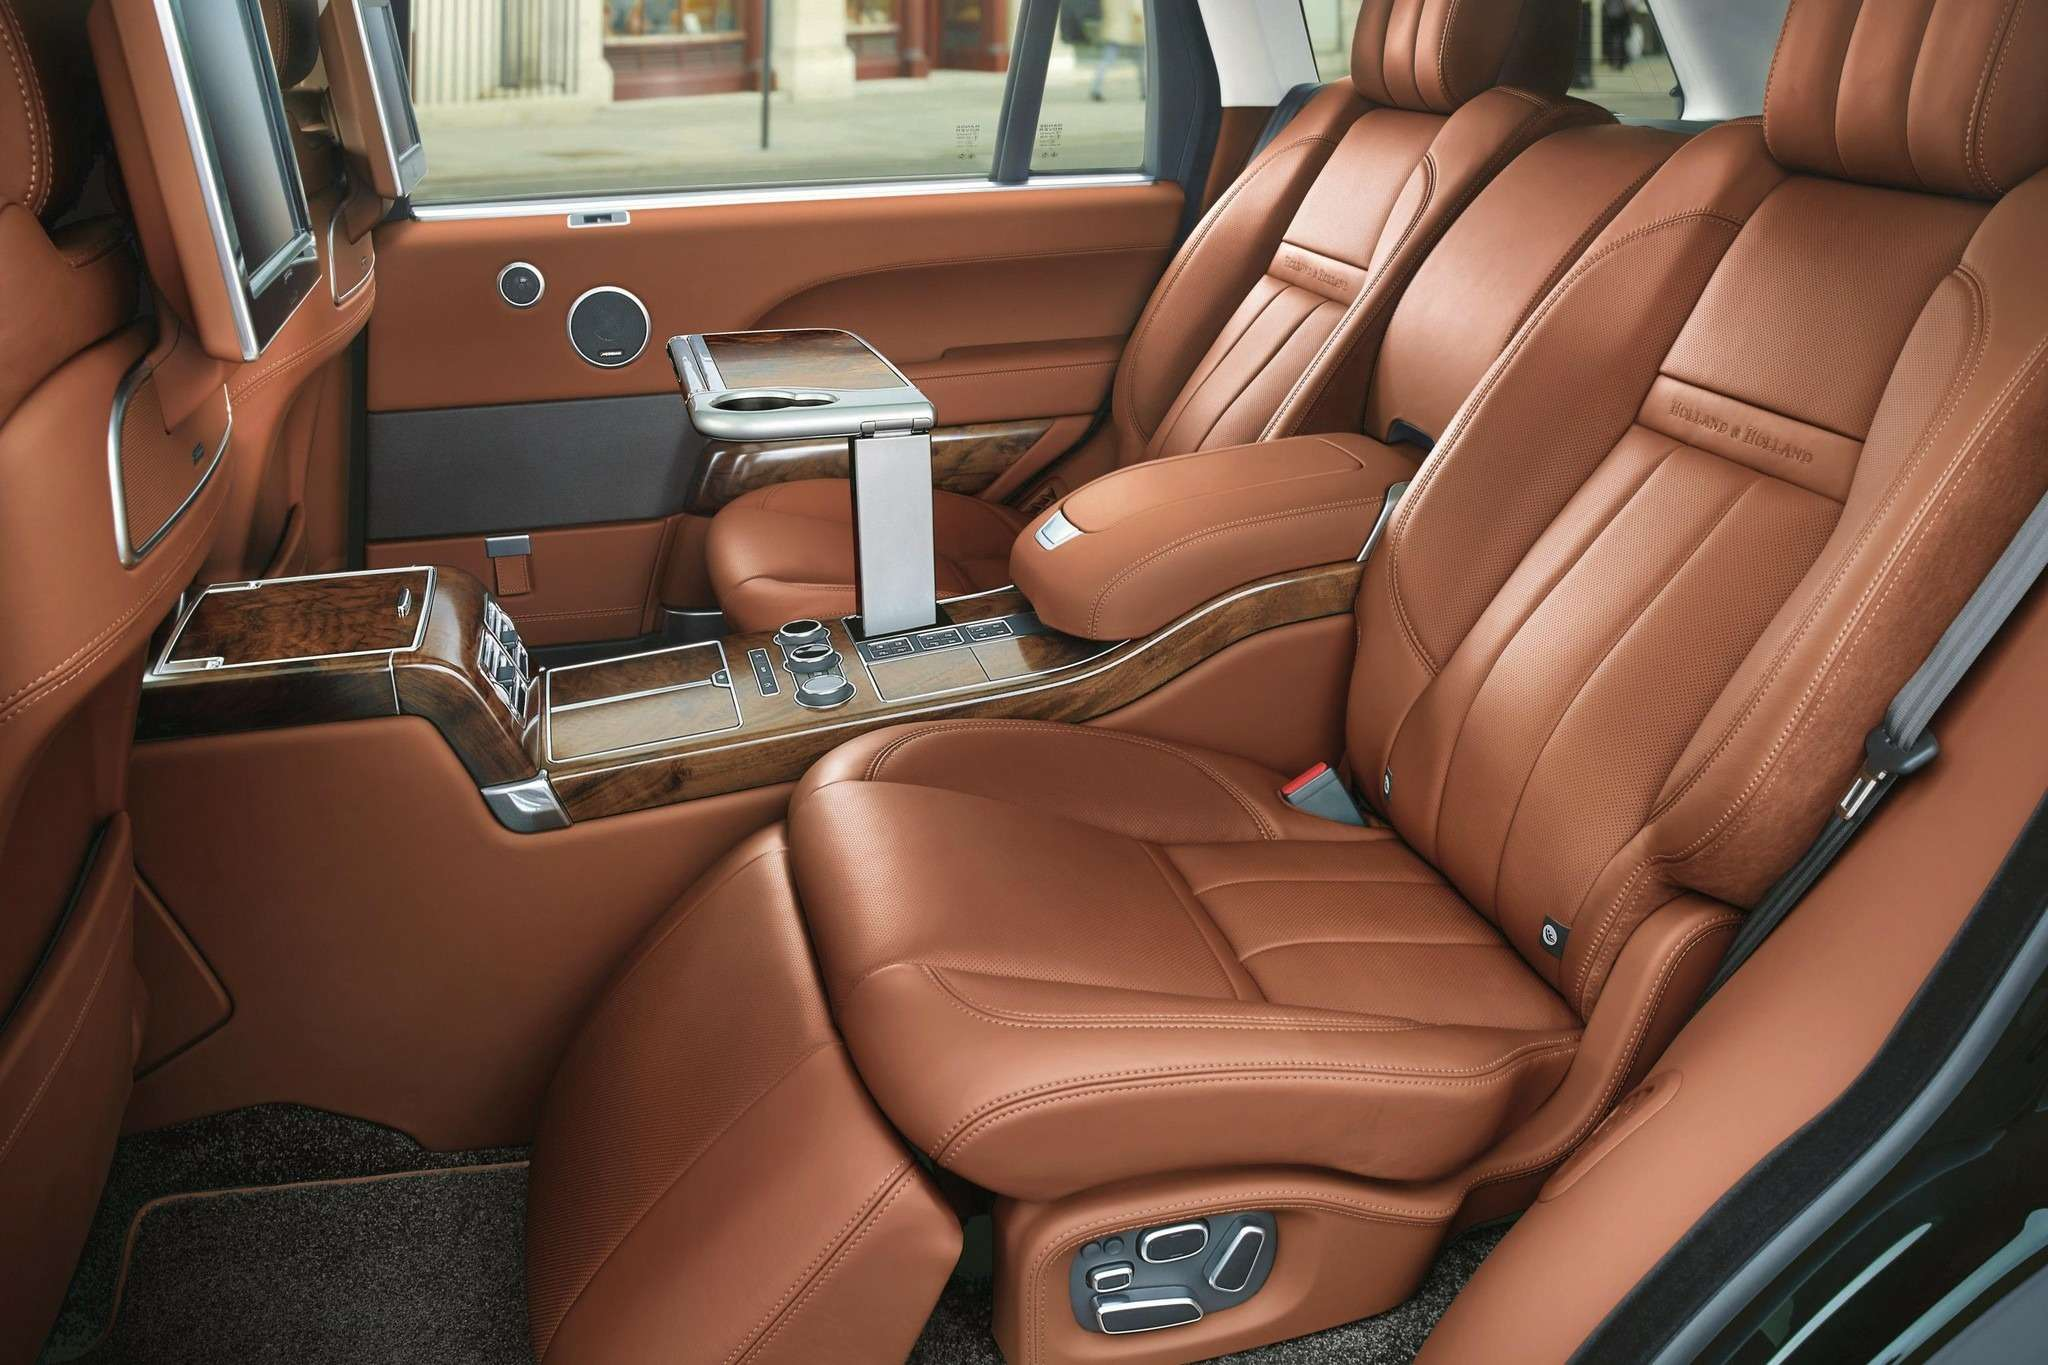 range-rover-ultra-luxury-will-purportedly-debut-at-the-2015-new-york-auto-show_9